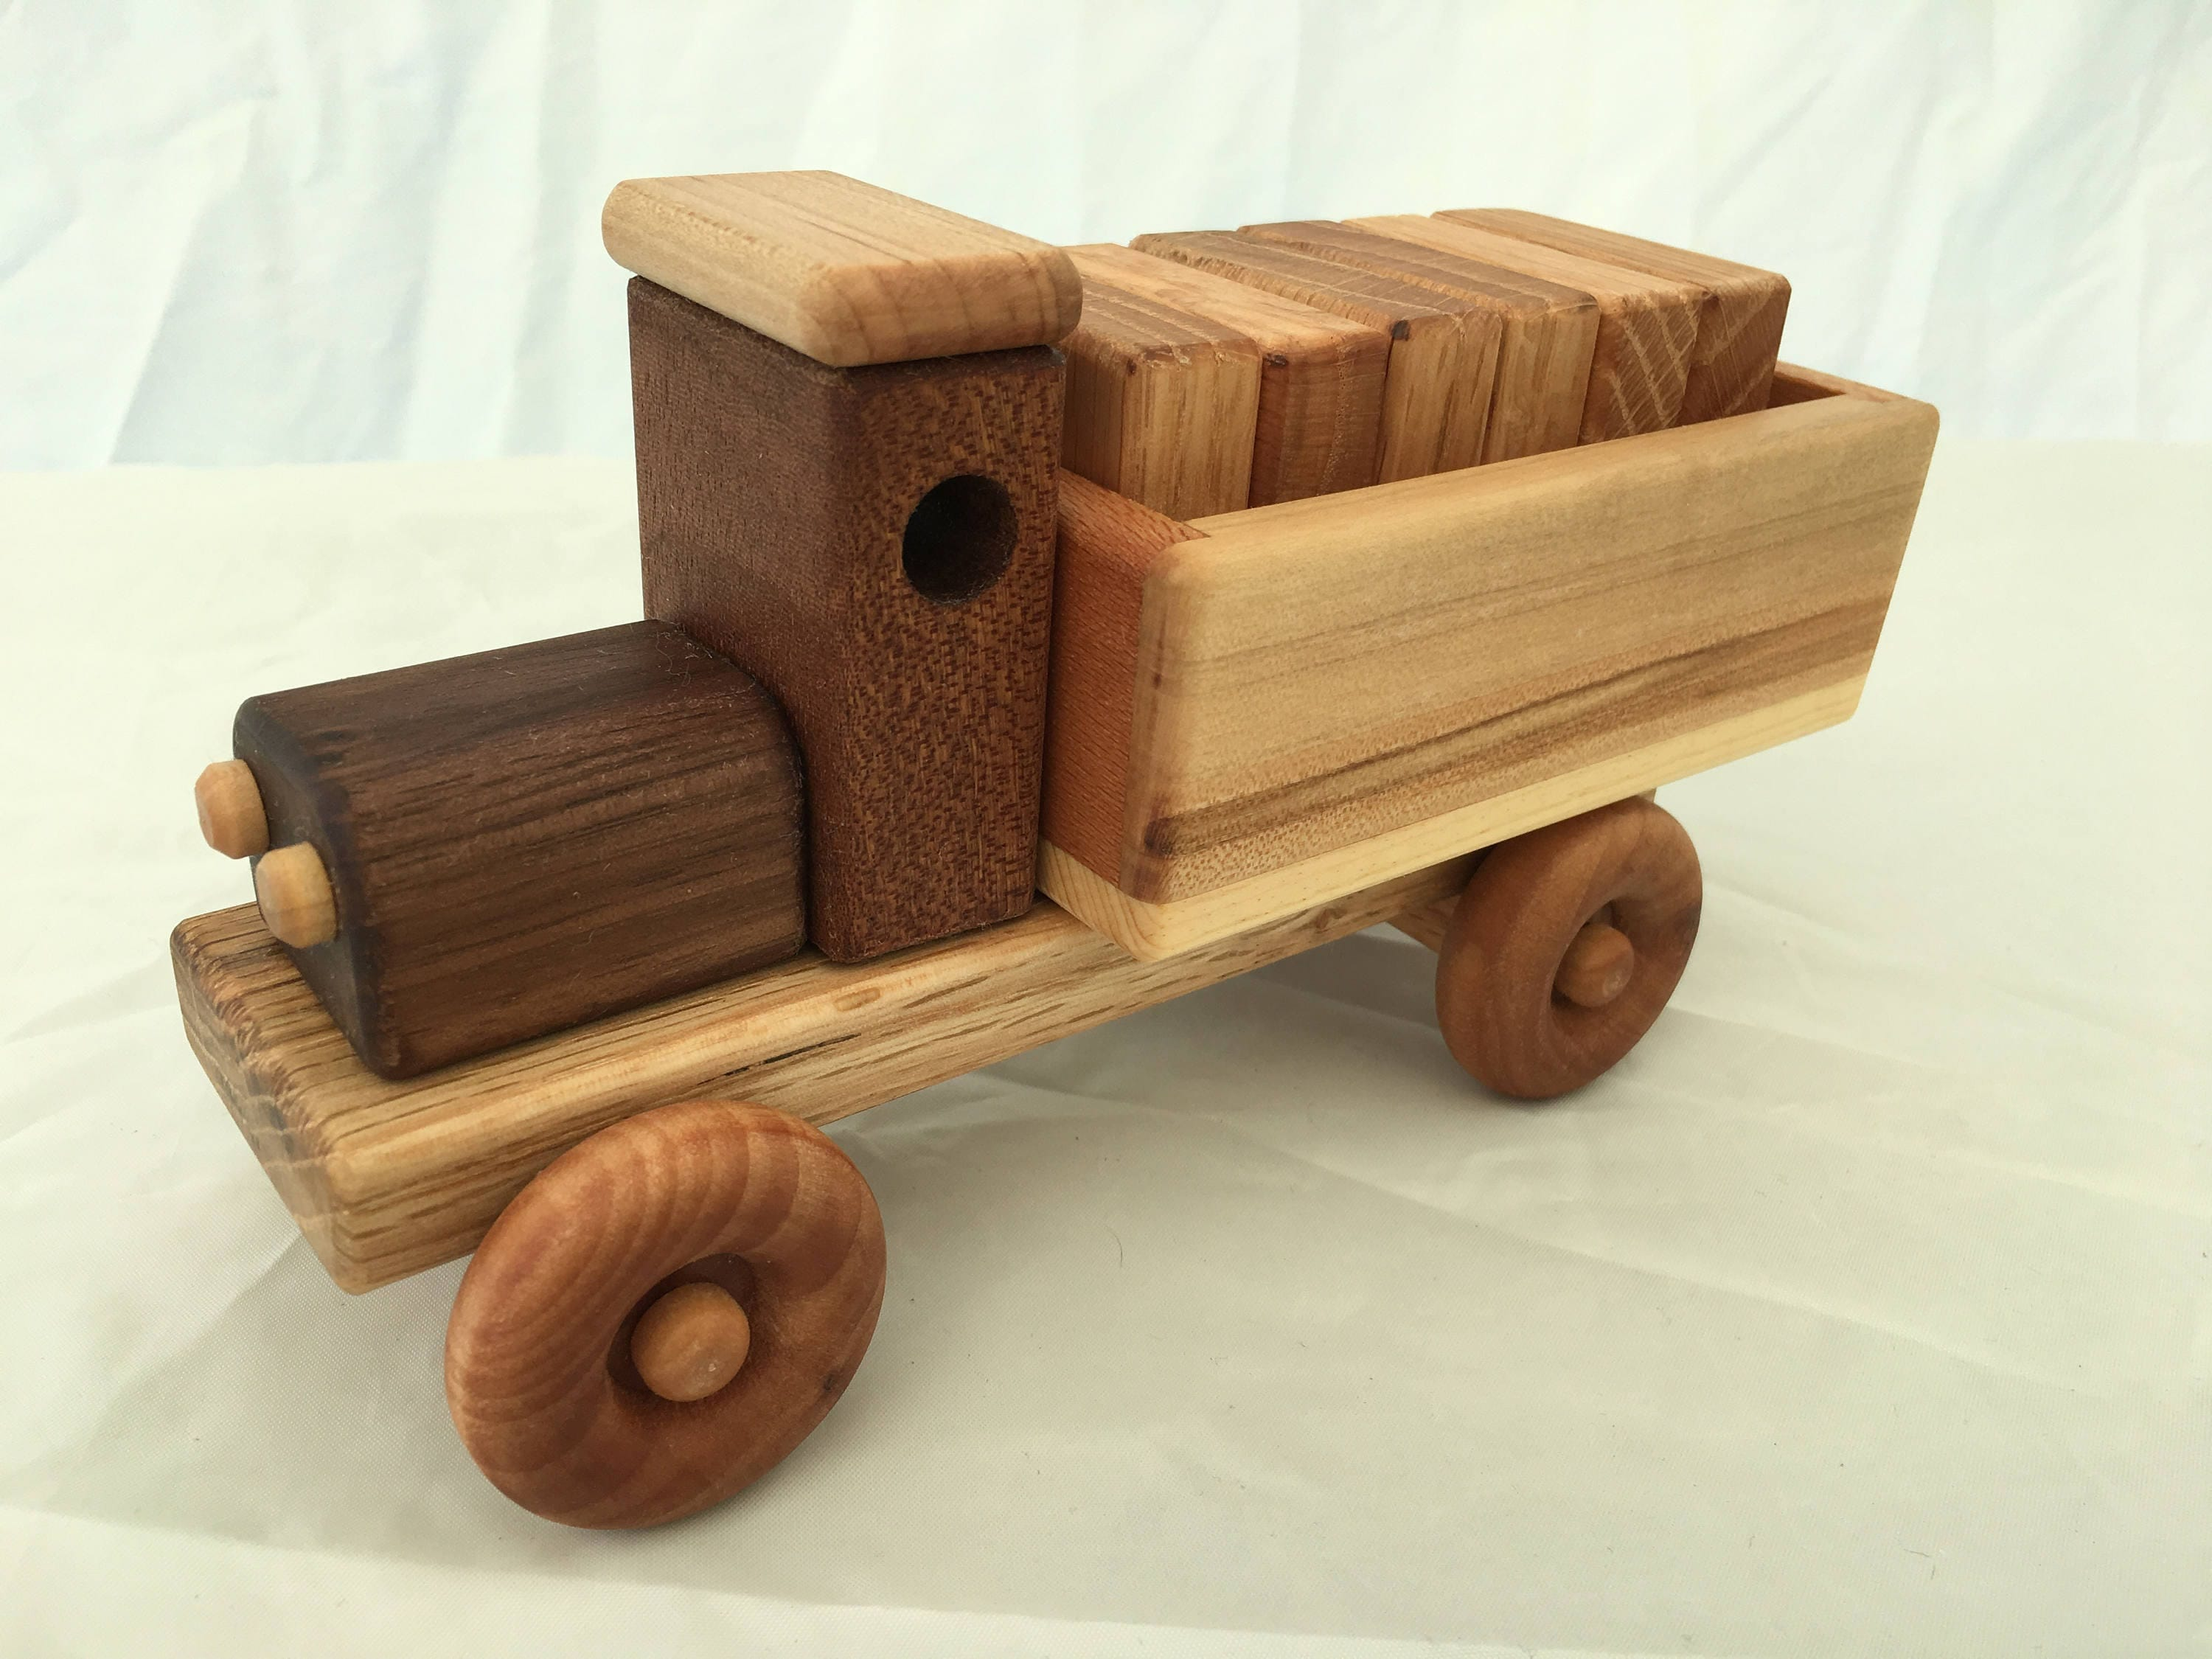 Handmade Wooden Toy Cargo Truck w Plain Blocks